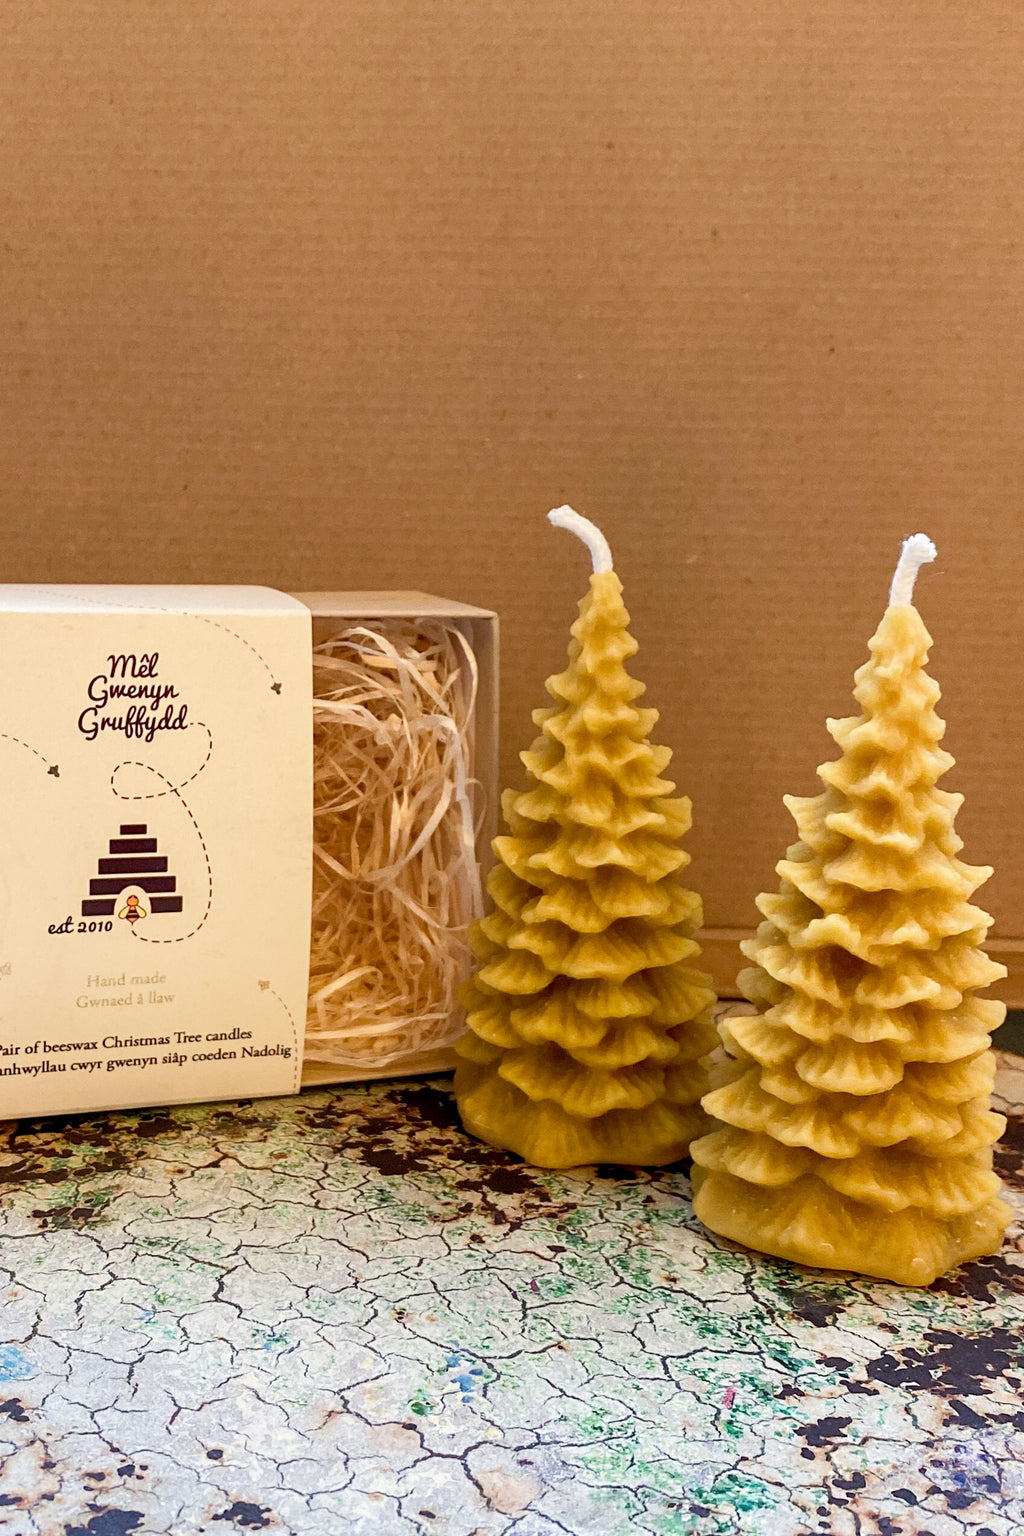 Gwenyn Gruffydd Welsh Beeswax Christmas Tree Candle Gift Set